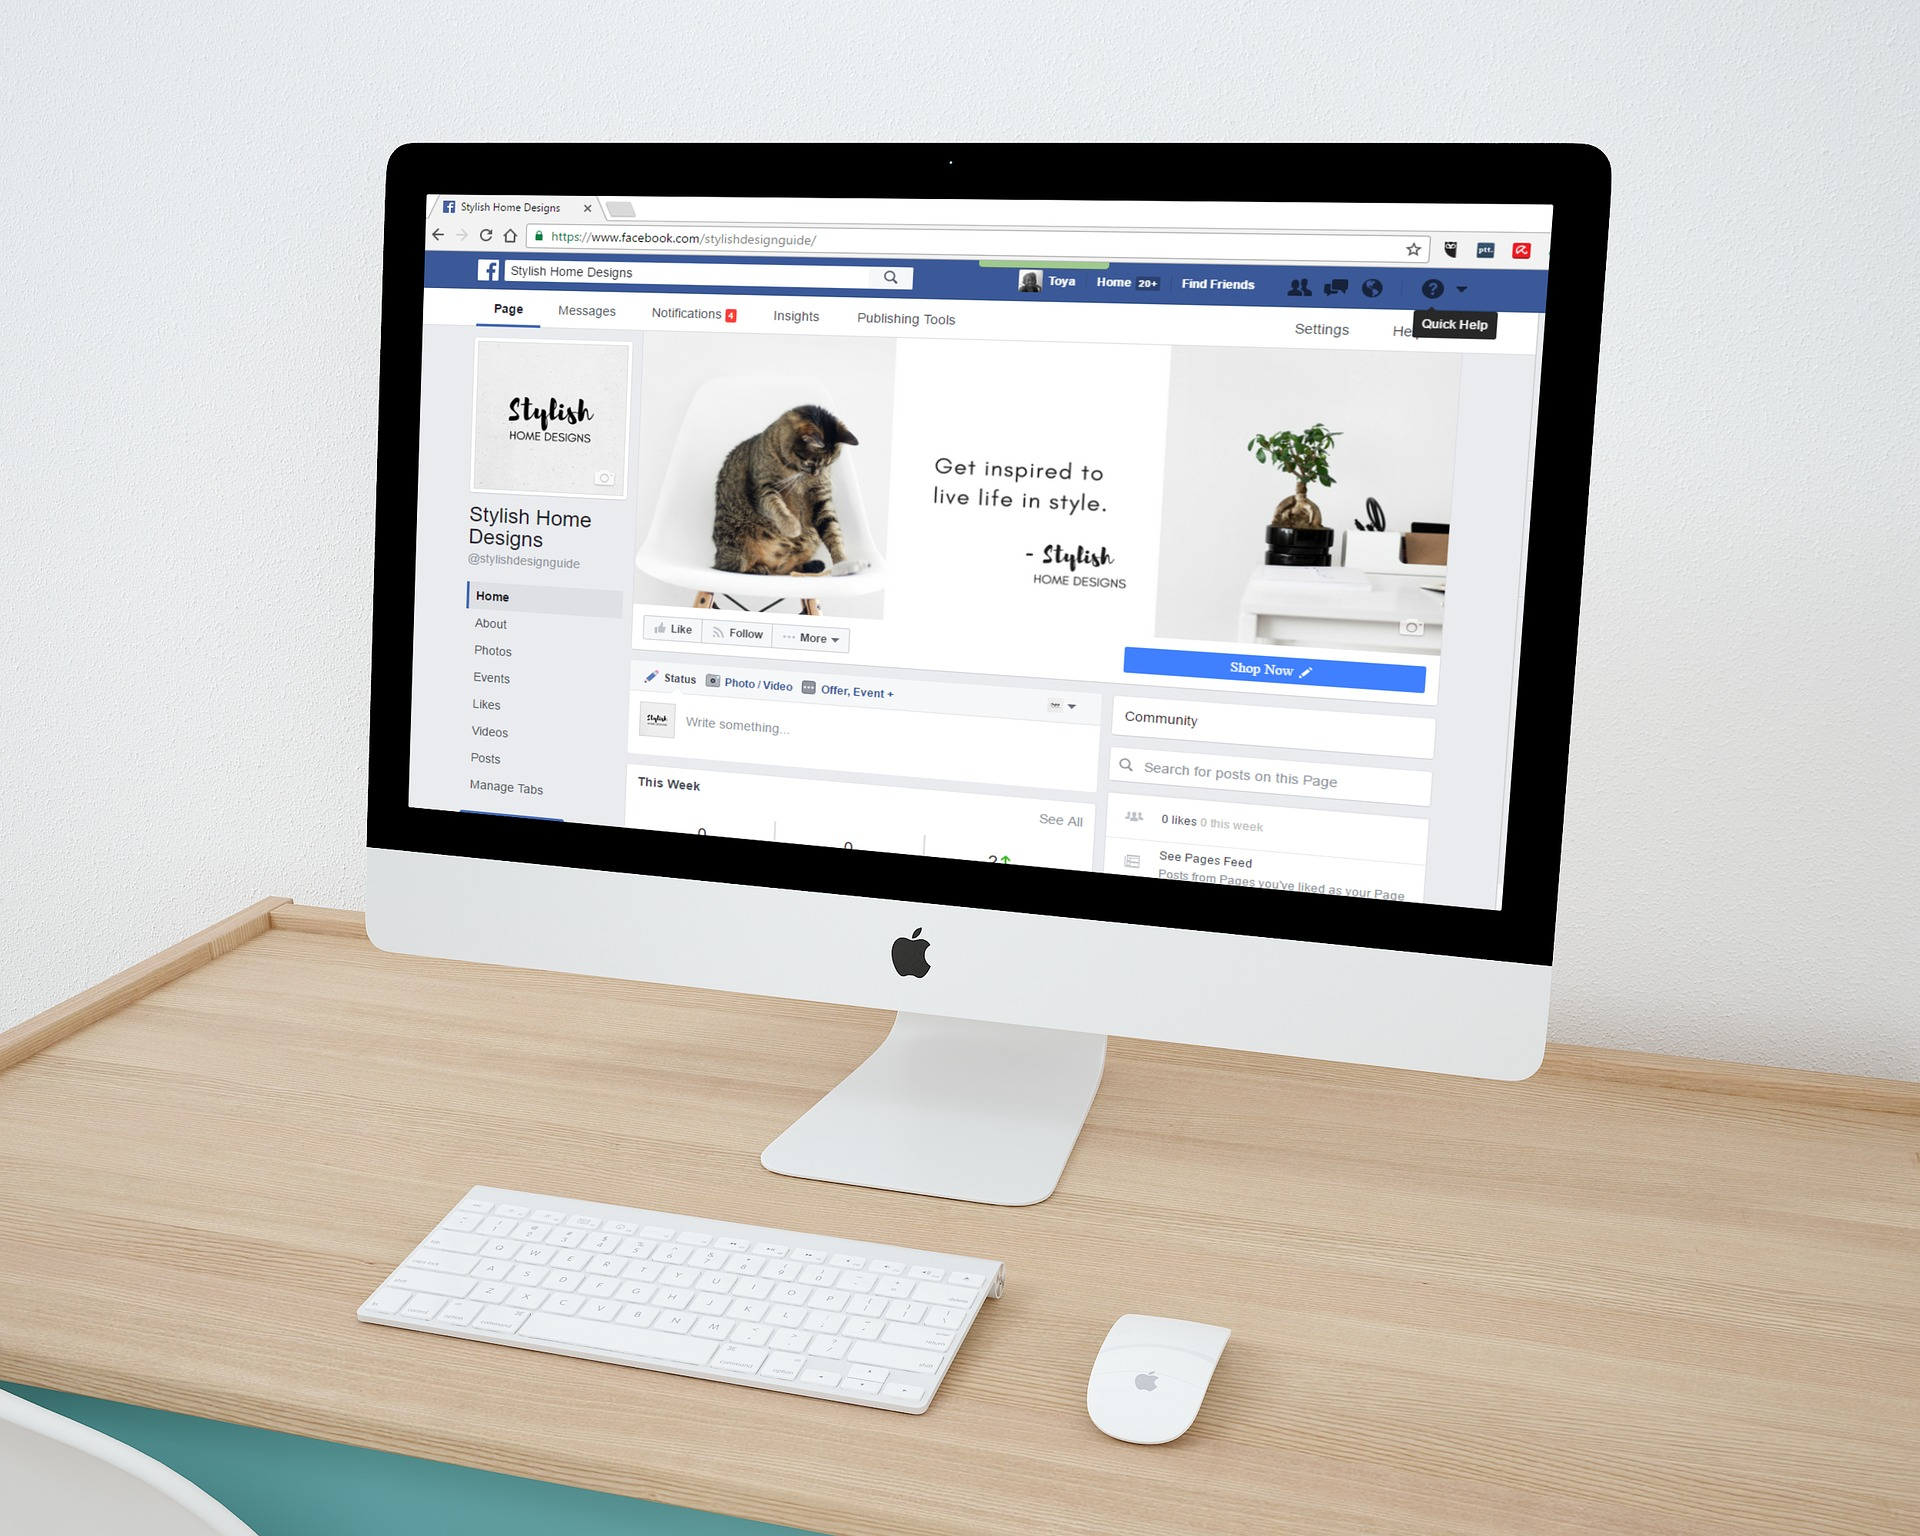 facebook ad marketing strategy Archives | Rocketium Academy